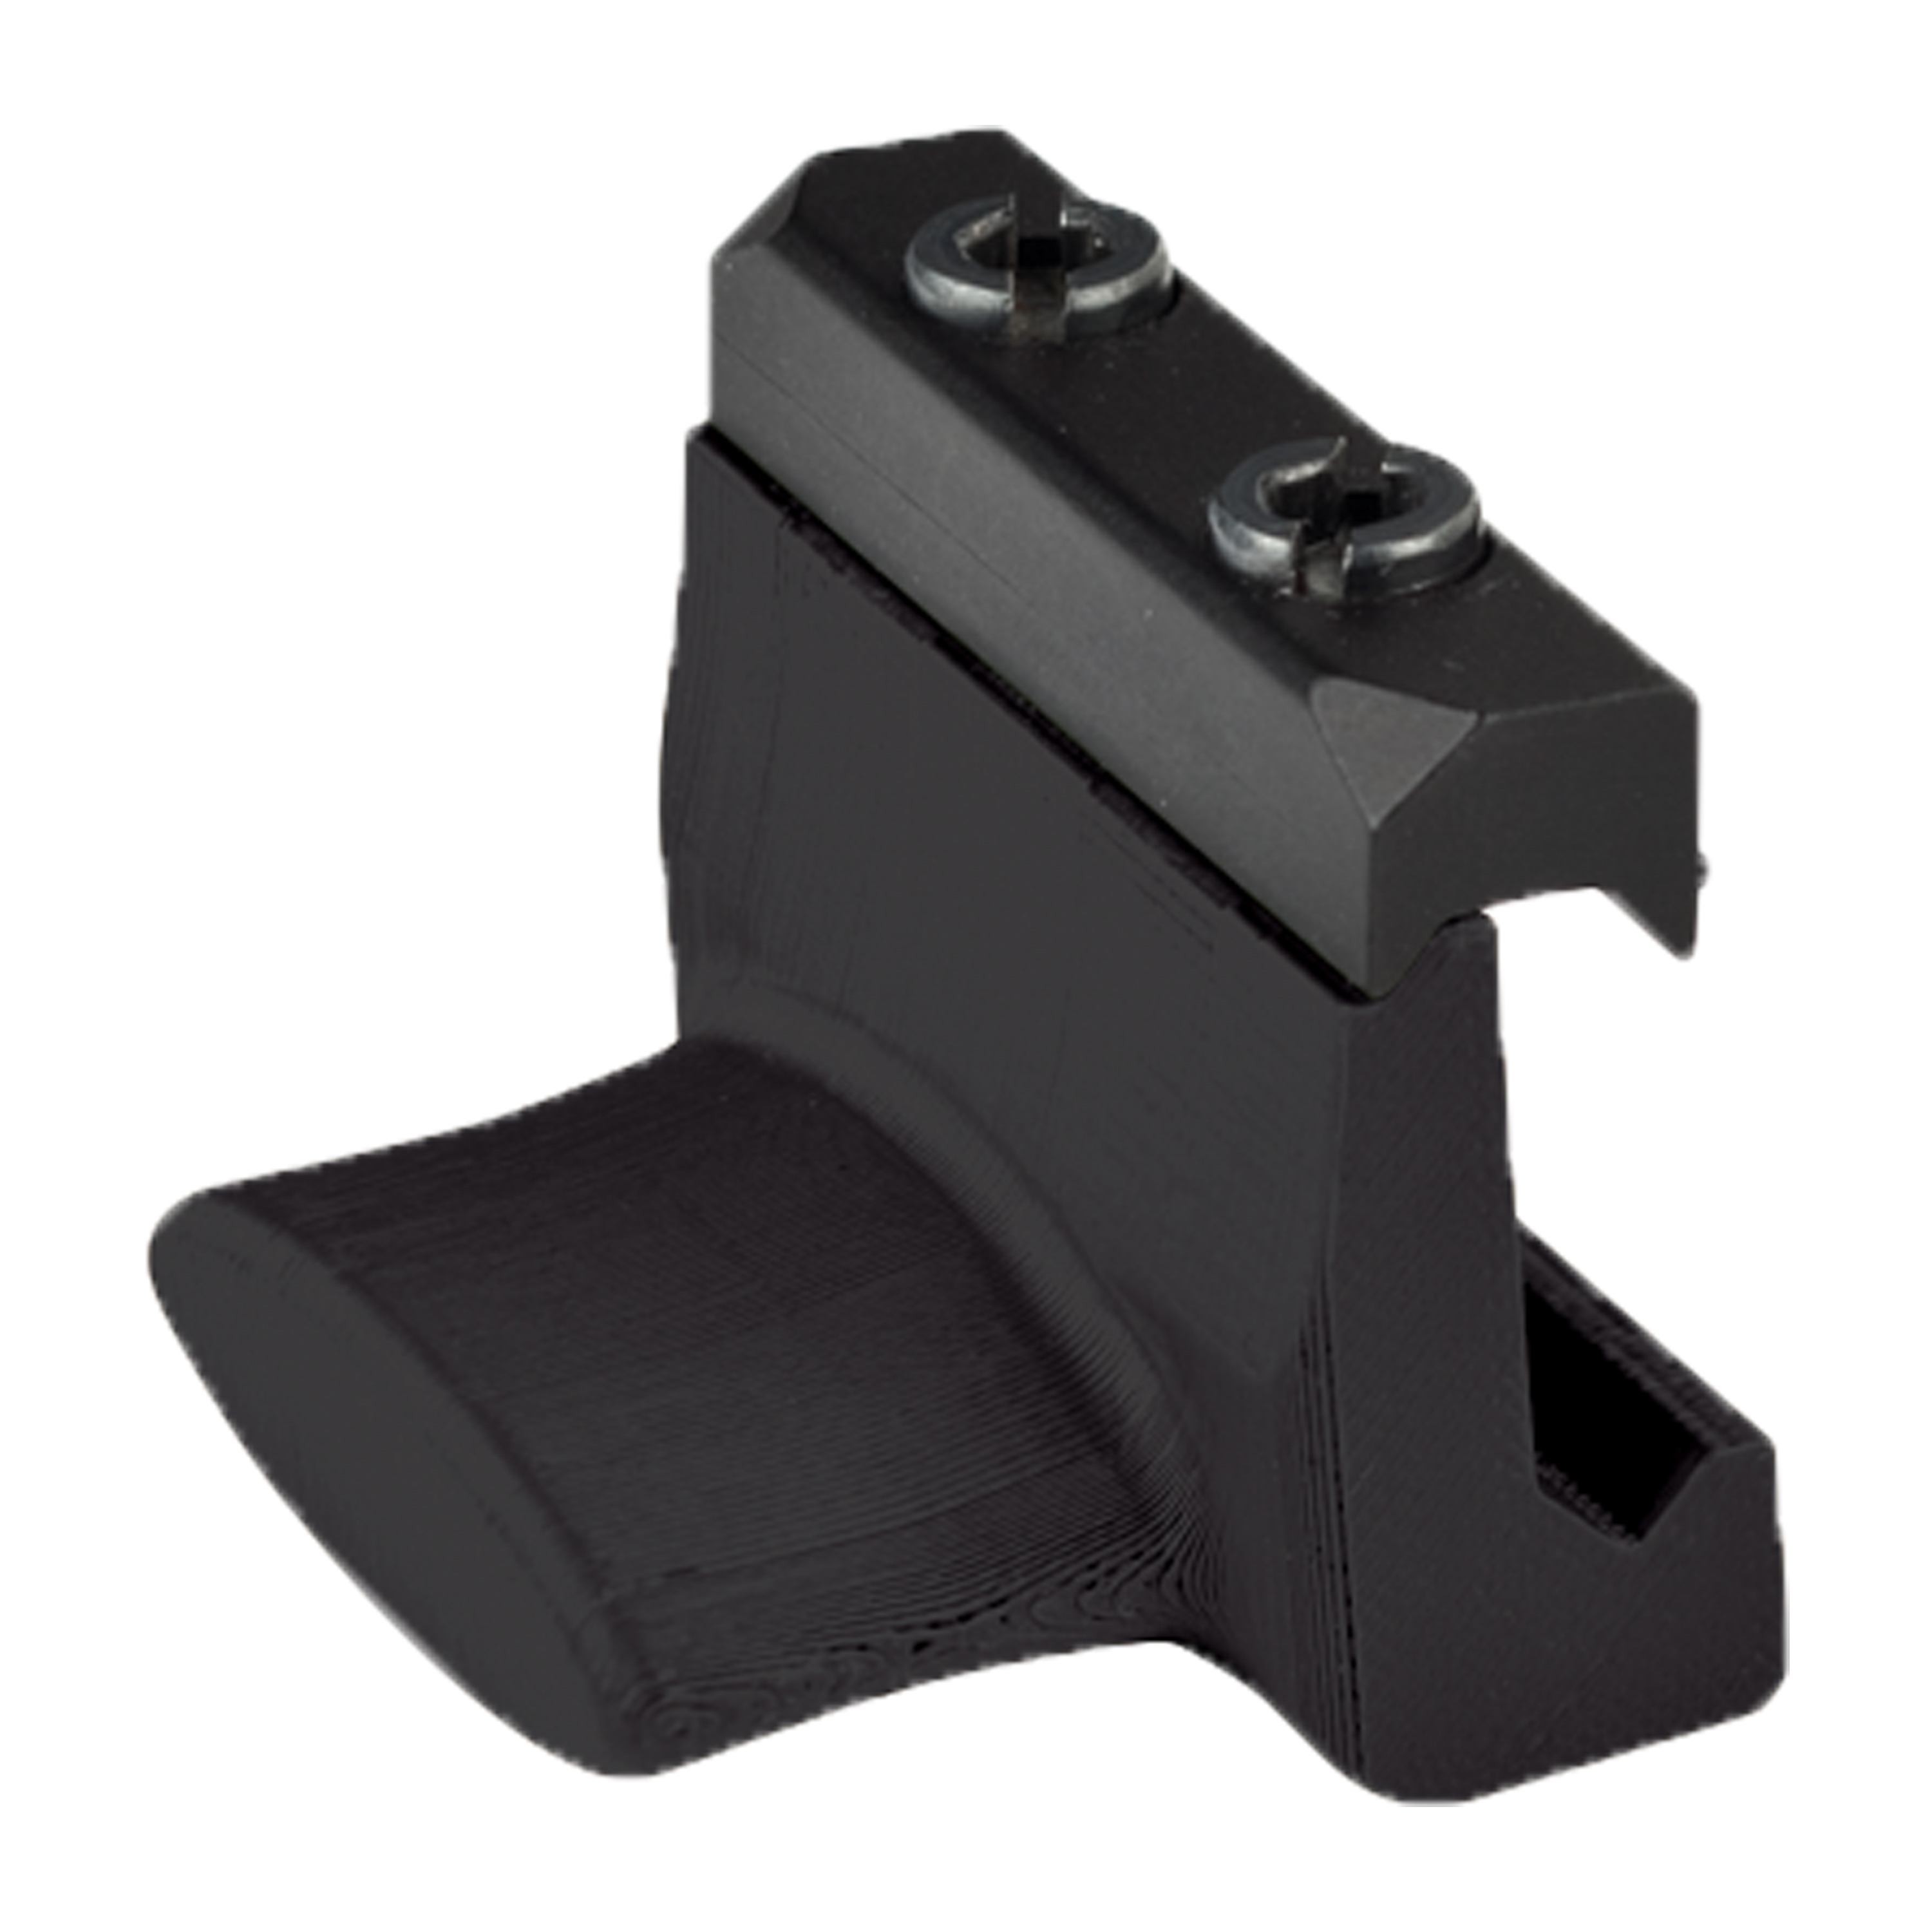 Blackhawk Rail Mount Thumbrest